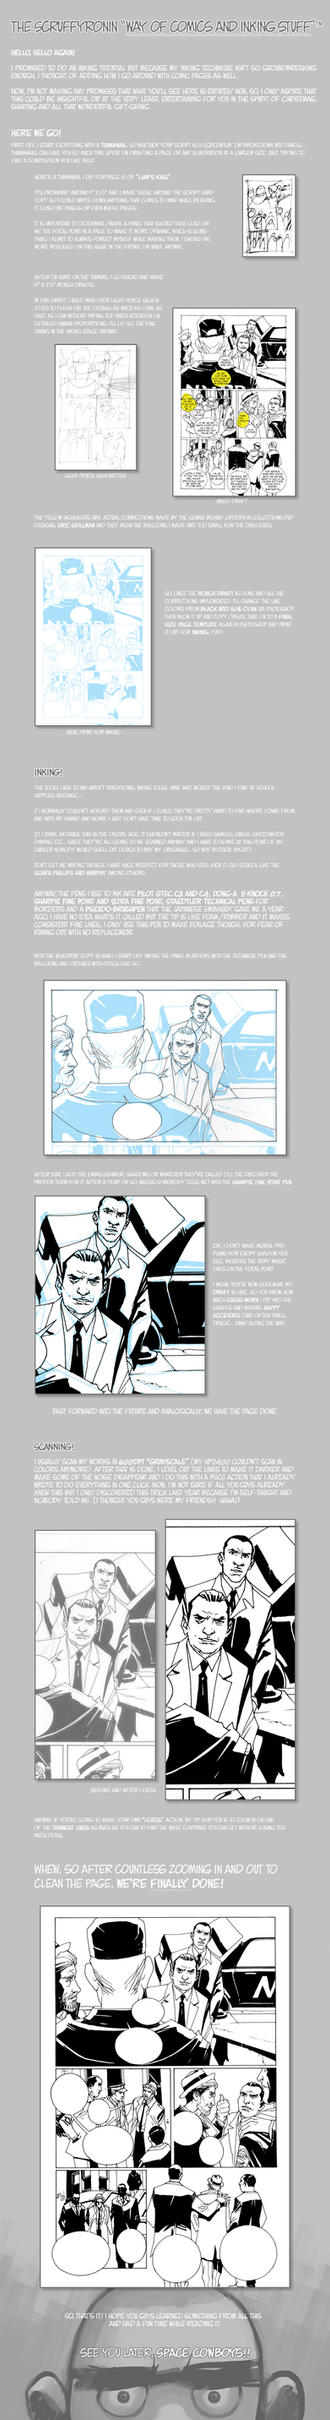 Comics and Inking Walkthrough by scruffyronin